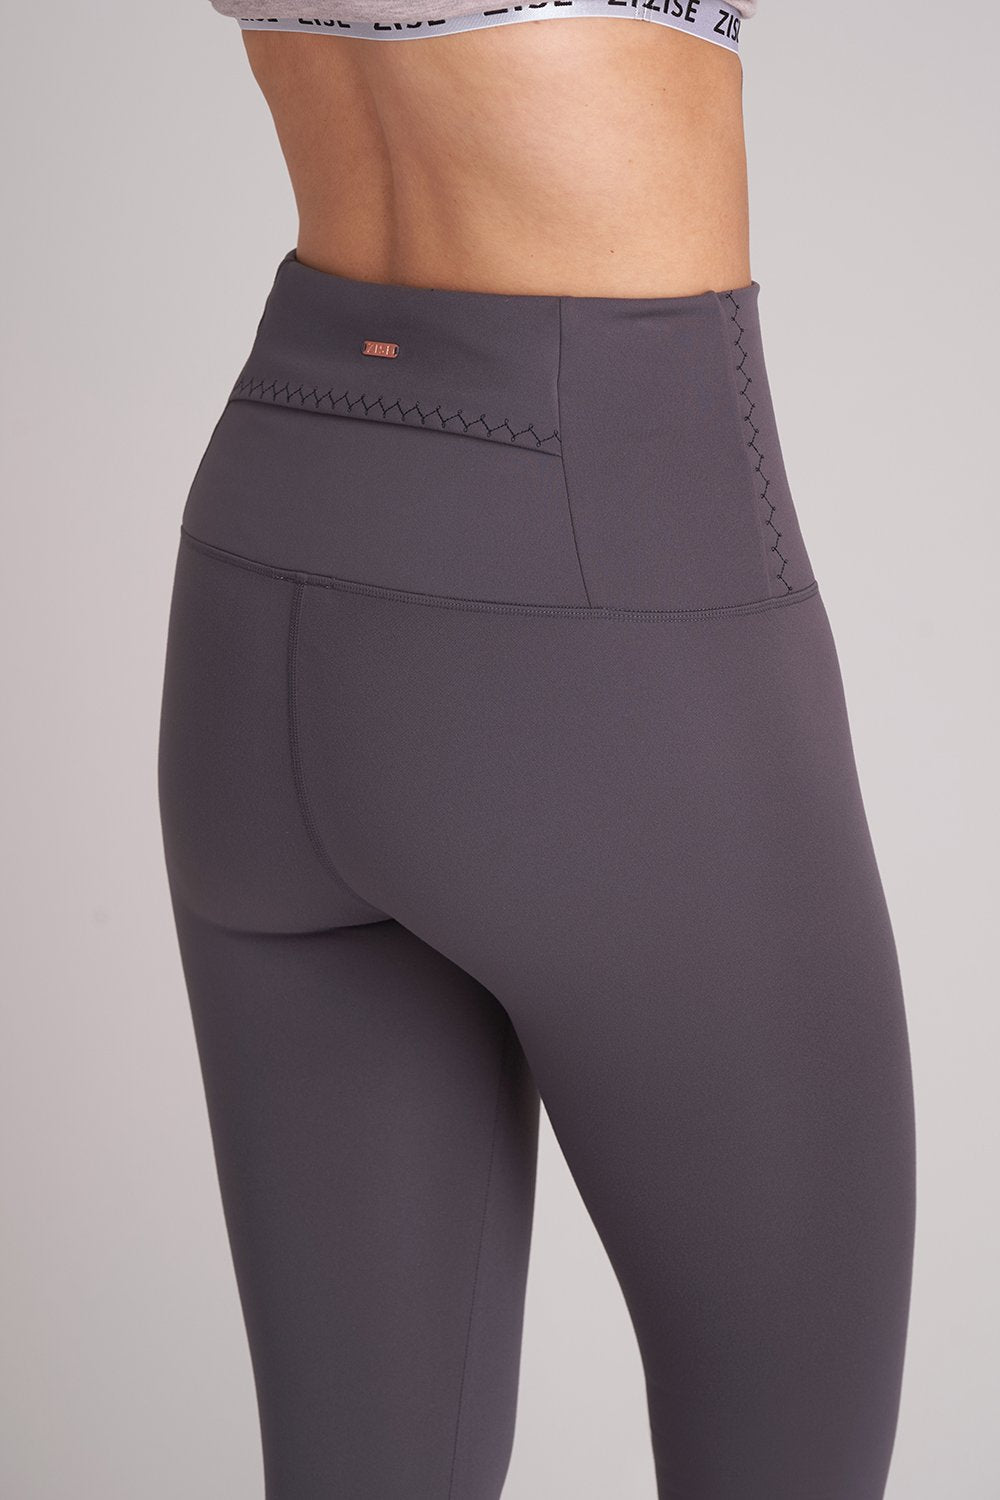 Zise Mimi 7/8 Leggings - BLOCH US